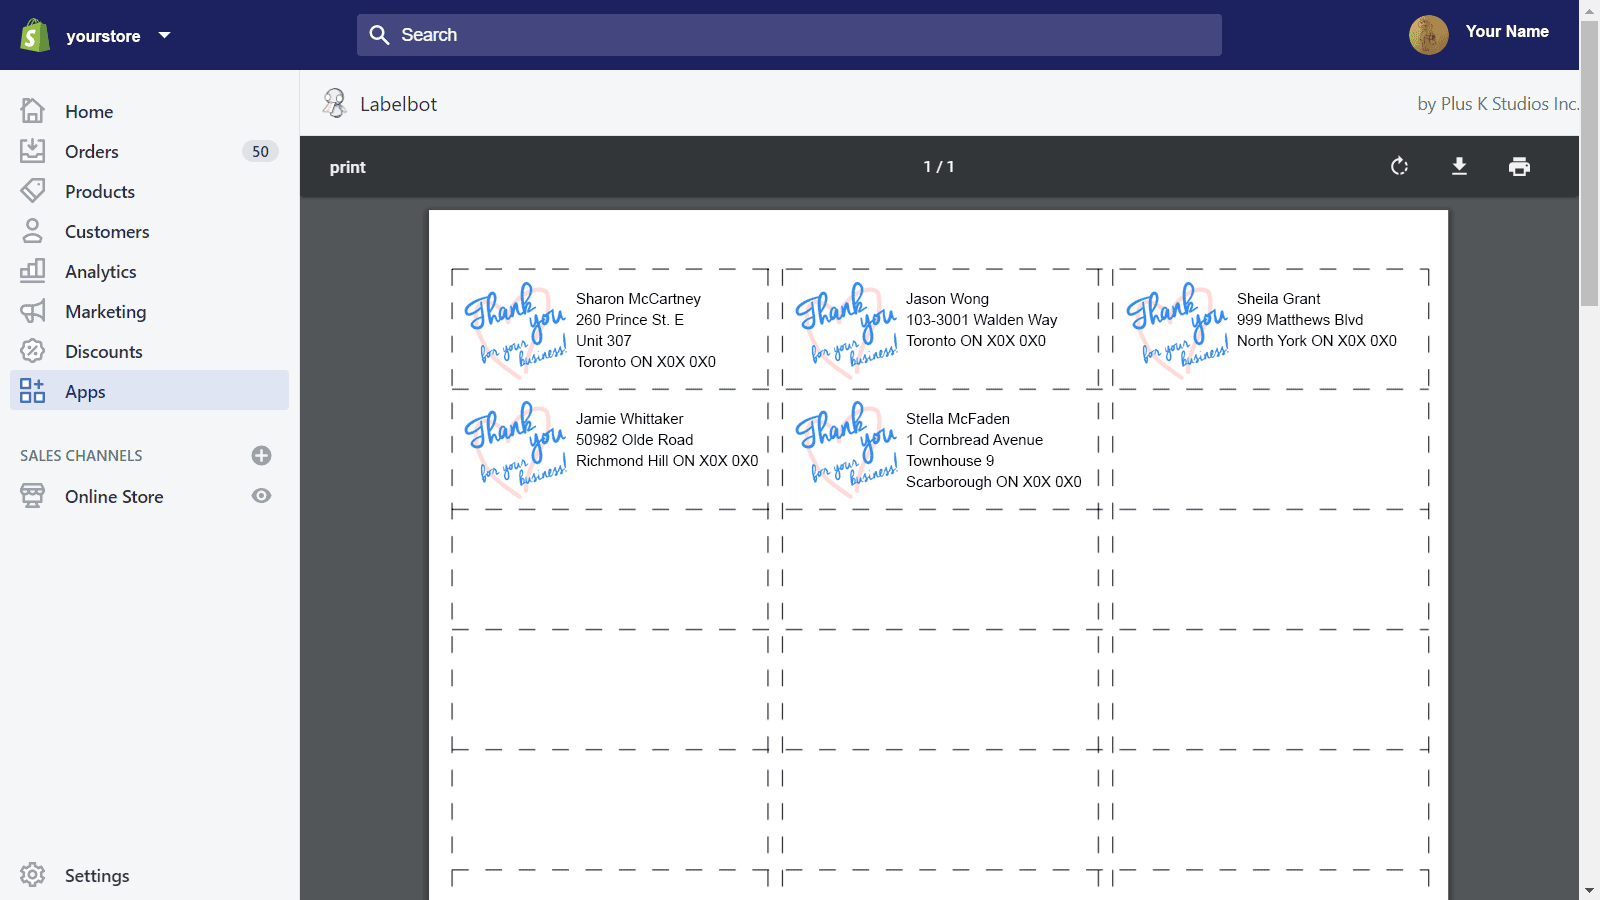 View/print PDFs from directly within the app.